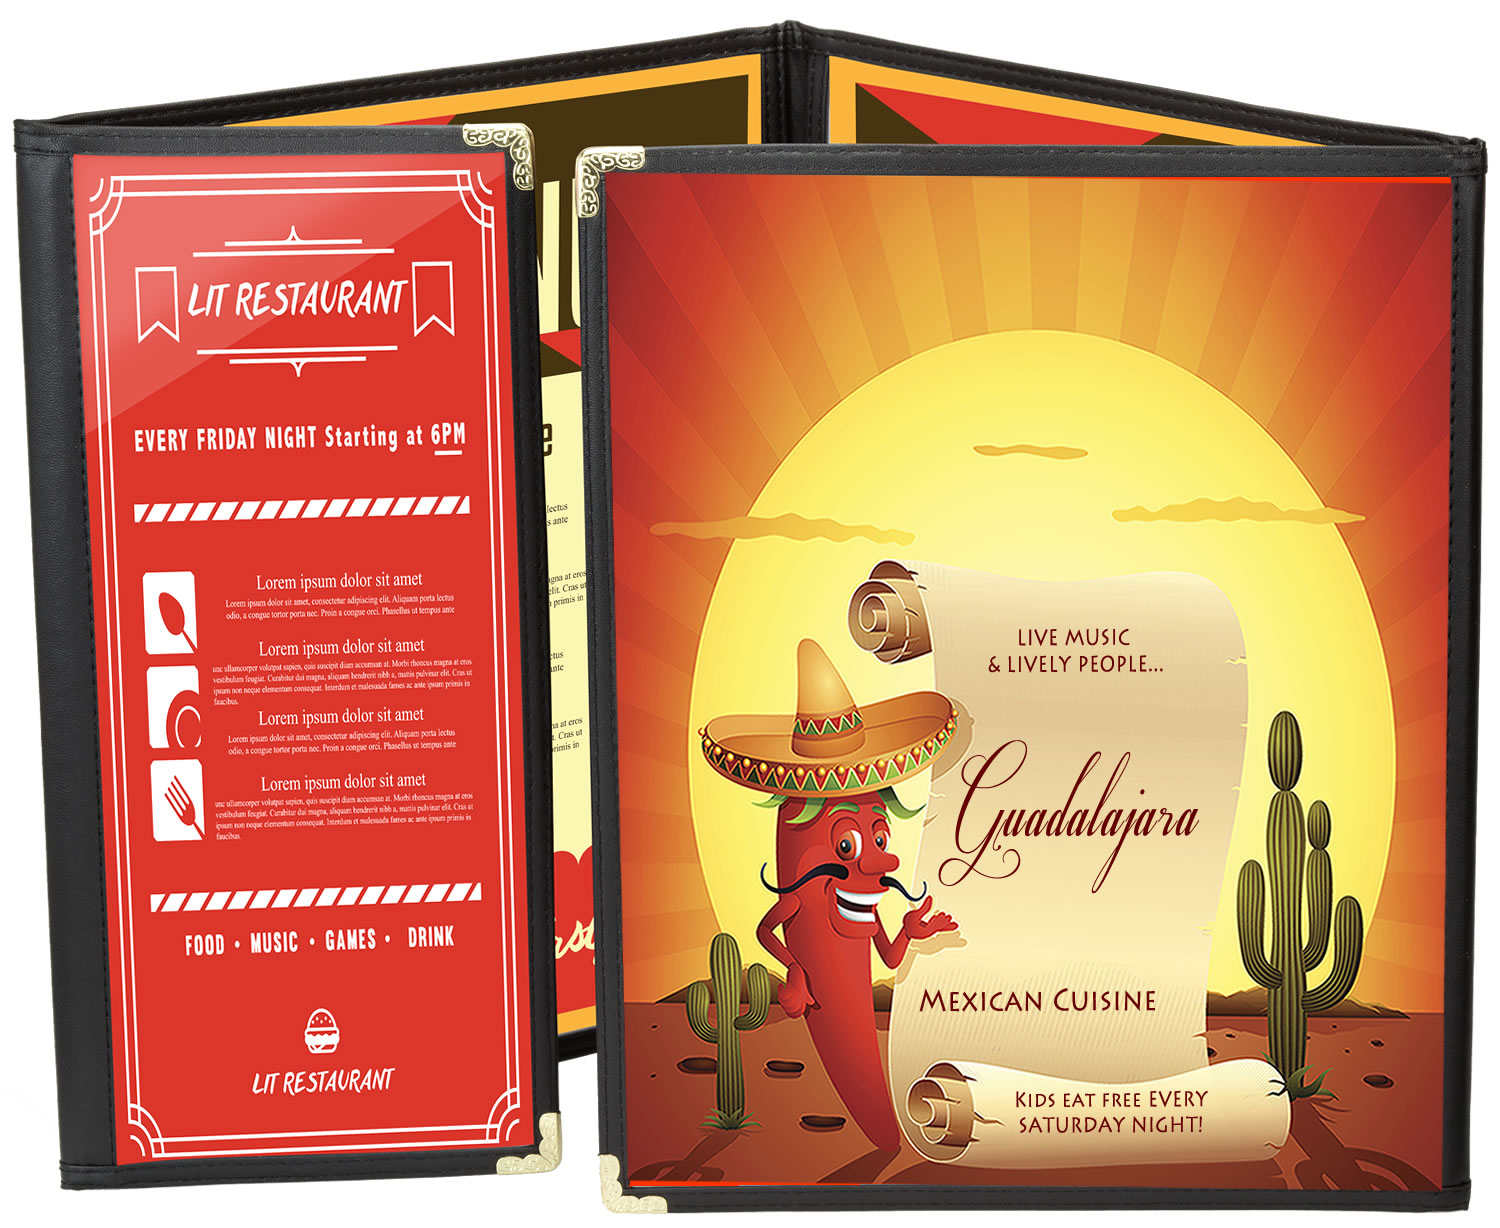 Simplicty New Cafe Menu Covers the quality choice from Menucoverman. FREE DELIVERY NATIONWIDE.